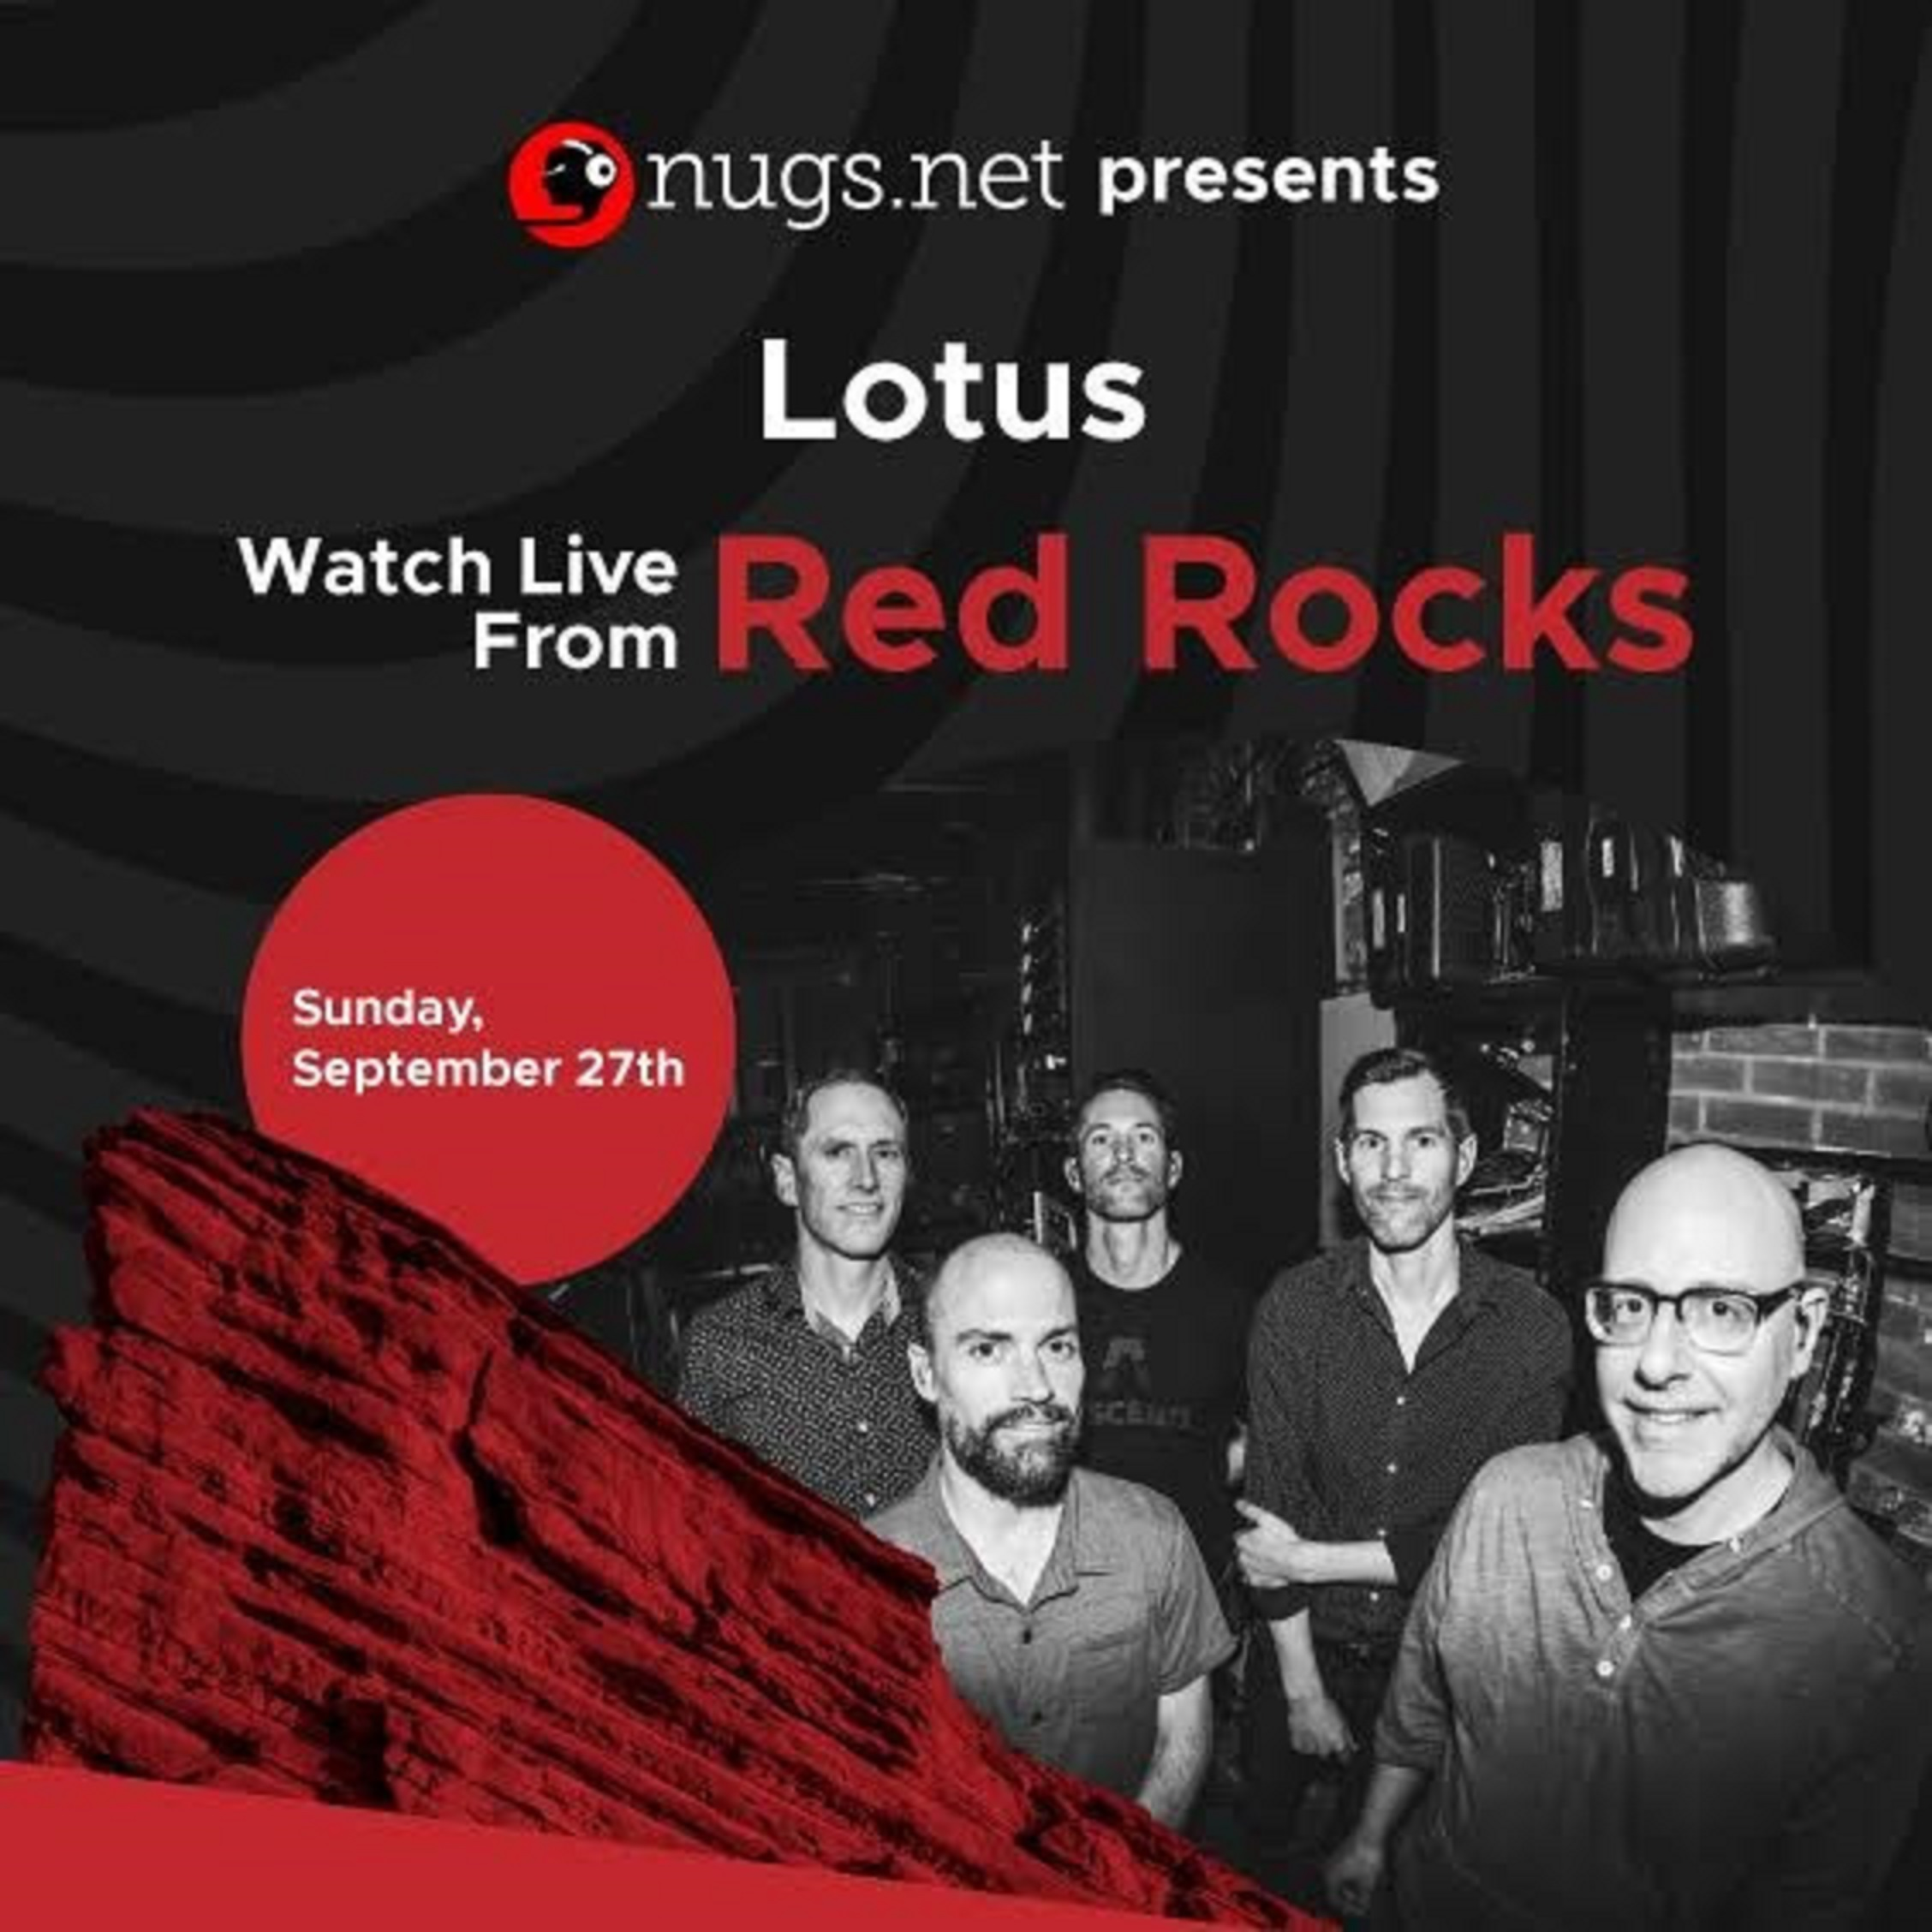 LOTUS To Perform Live at Red Rocks Amphitheatre on Sunday, September 27th